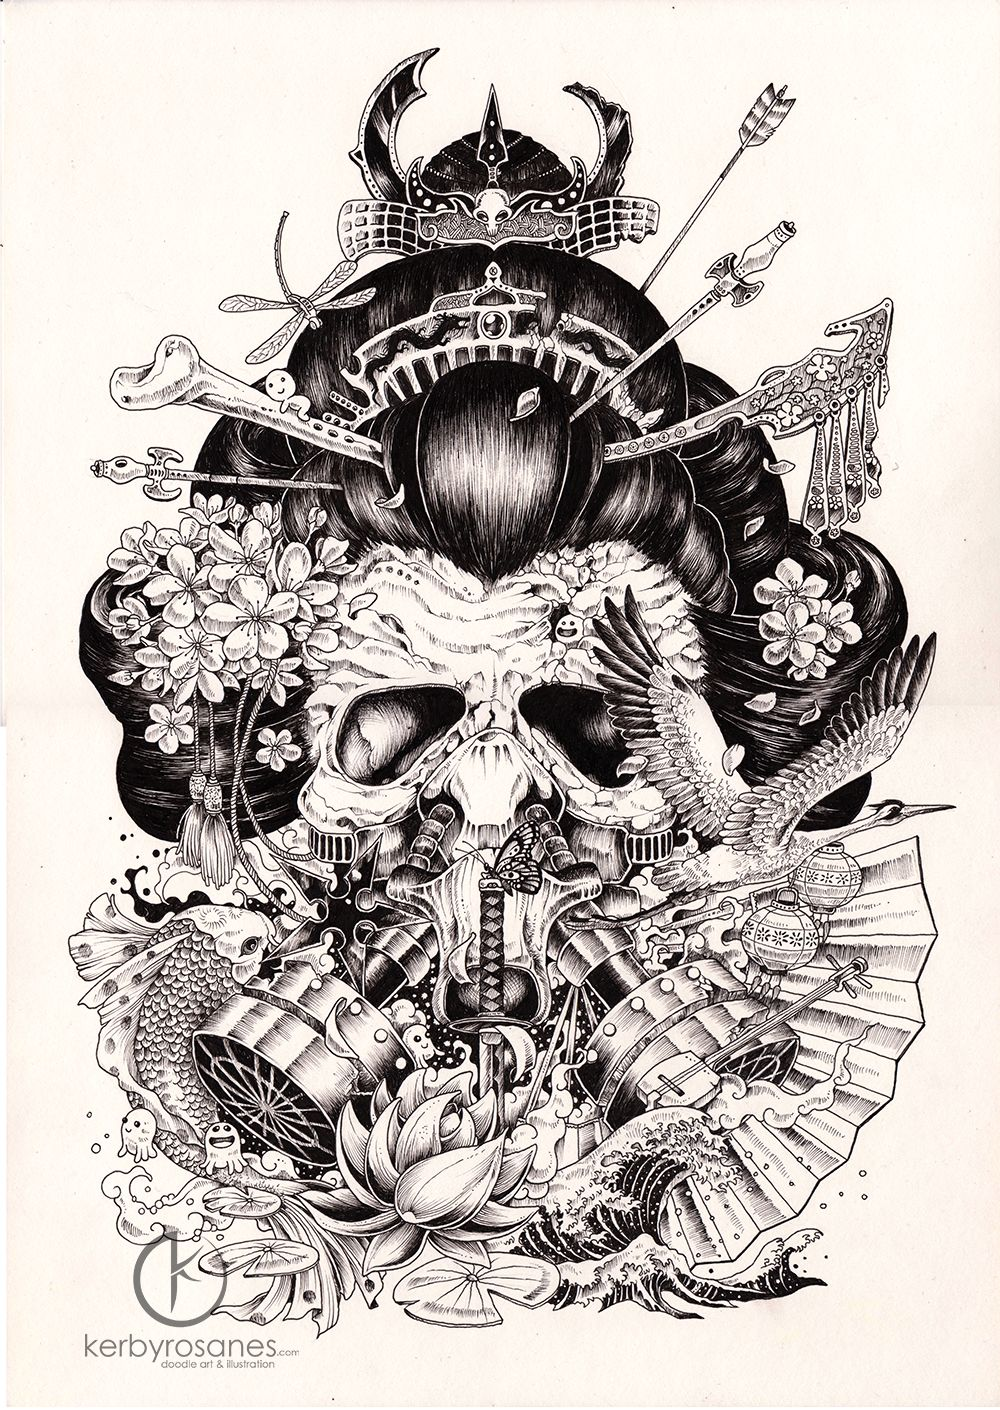 Legendary Sketchy Stories by Kerby Rosanes | Artist Kerby Rosanes ...